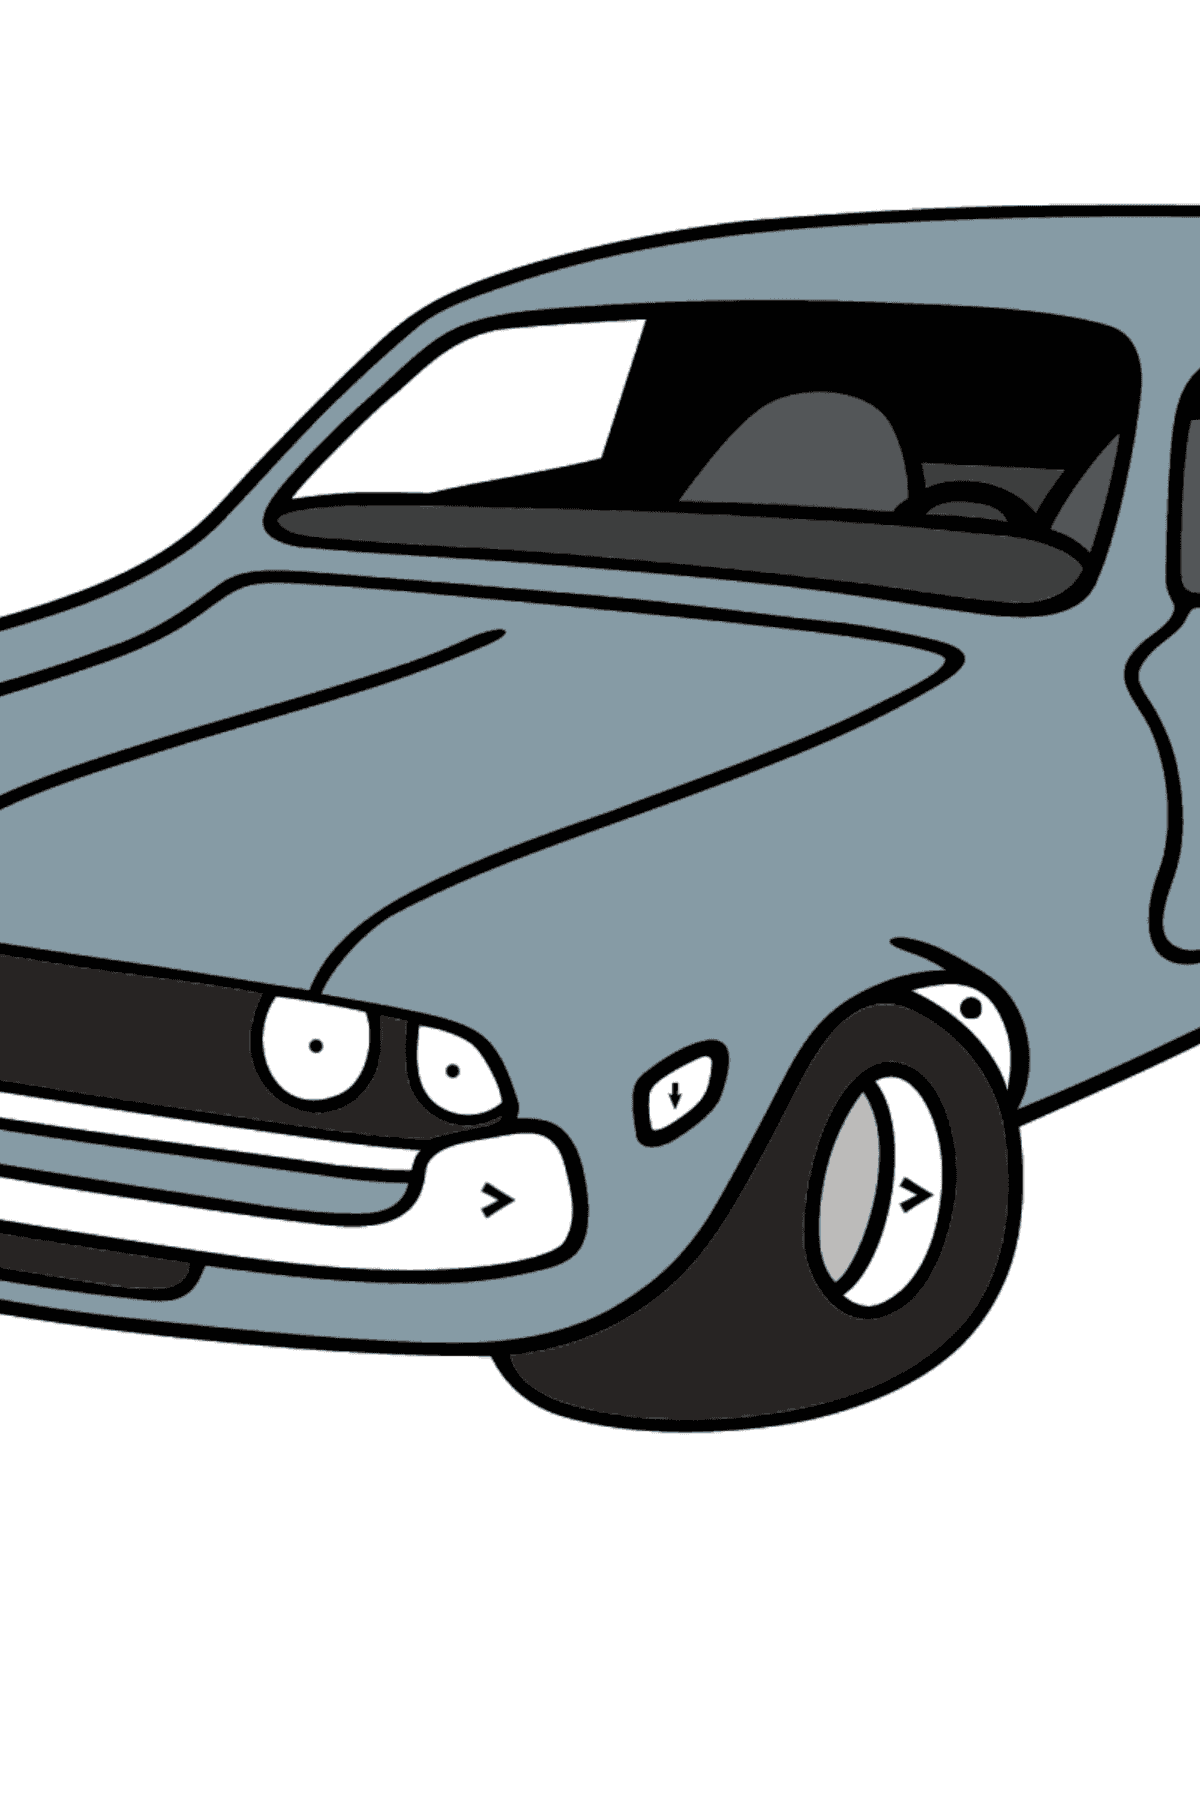 Chevrolet gray car coloring page - Coloring by Symbols for Kids